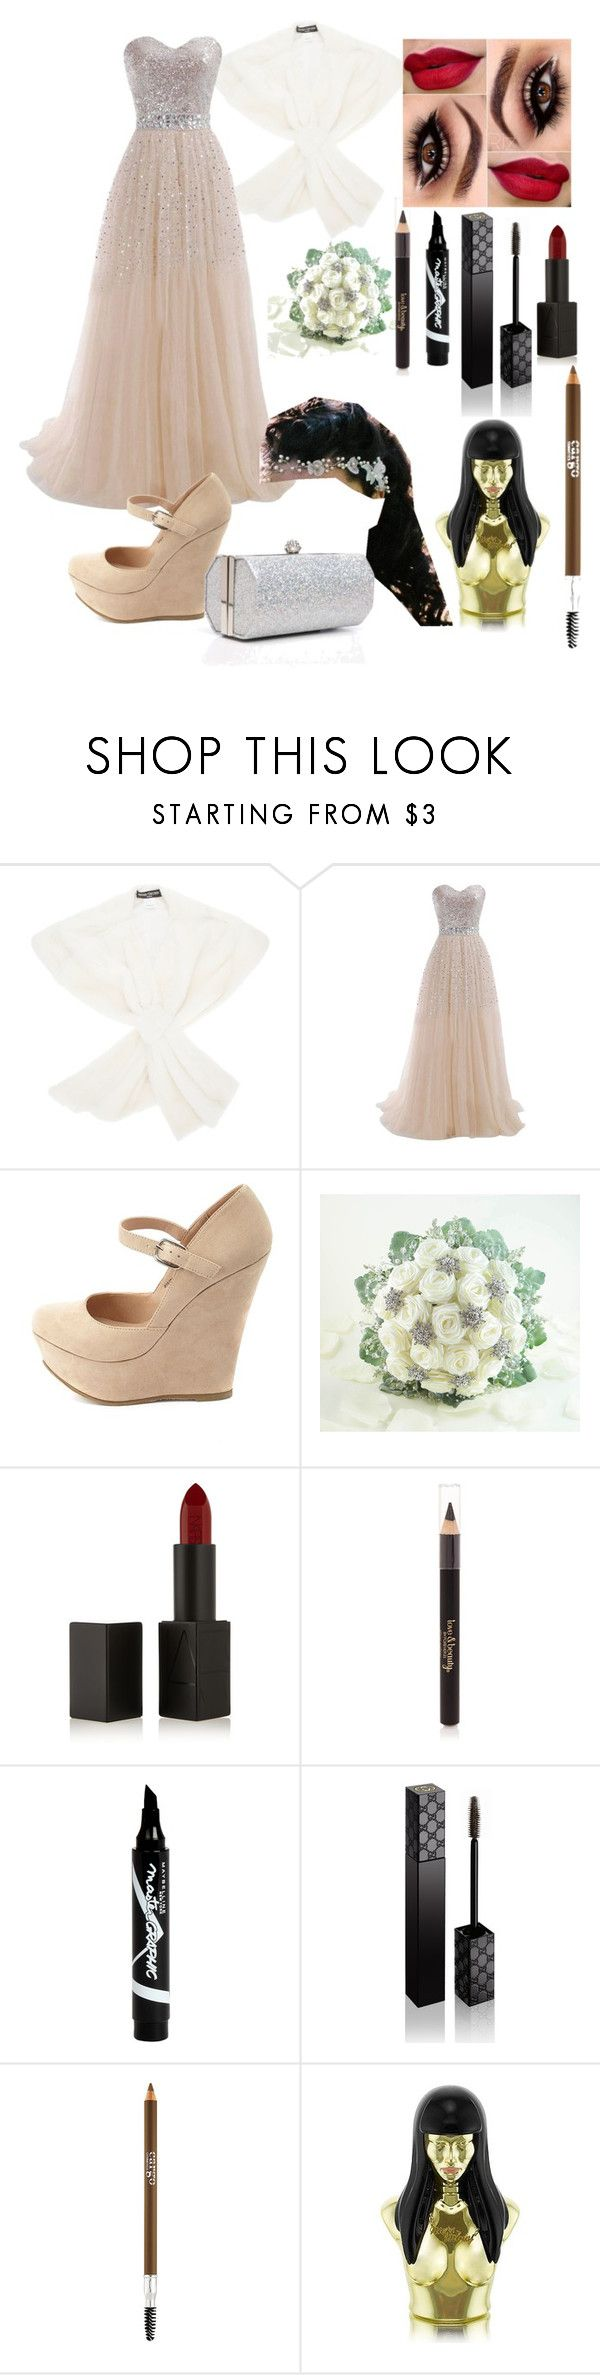 """Wedding Day (Bride)"" by rosie443 on Polyvore featuring Henri Gruber Paris, Charlotte Russe, NARS Cosmetics, Forever 21, Maybelline, Gucci, CARGO, Nicki Minaj and J. Furmani"